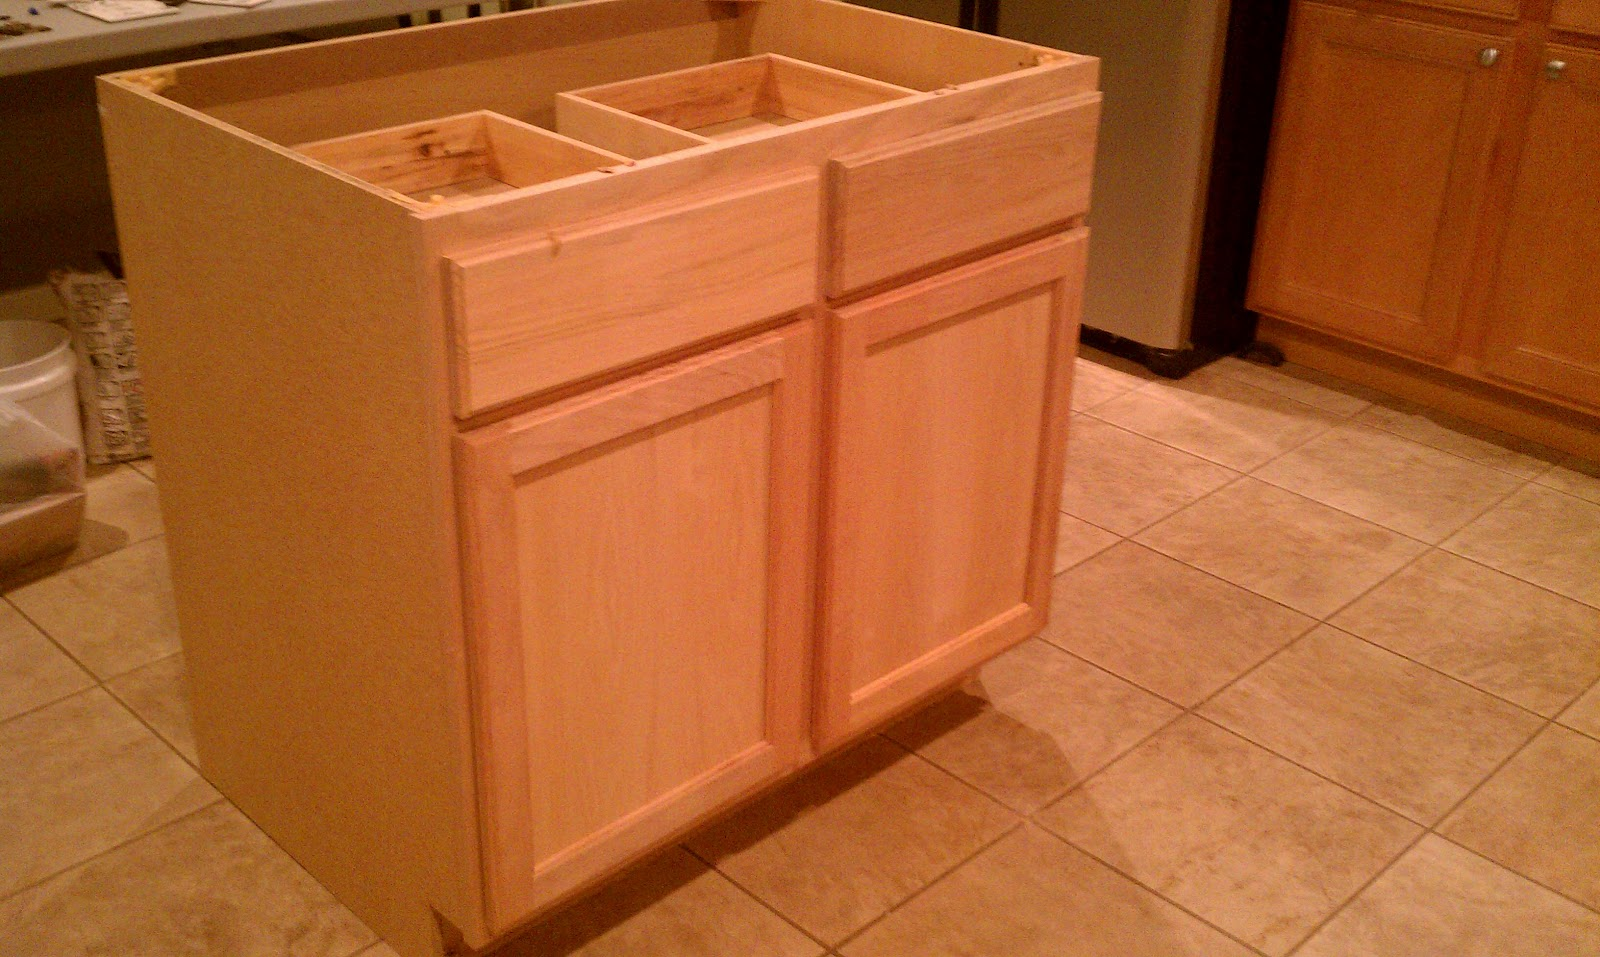 Building a kitchen island using cabinets for Making a kitchen island from cabinets